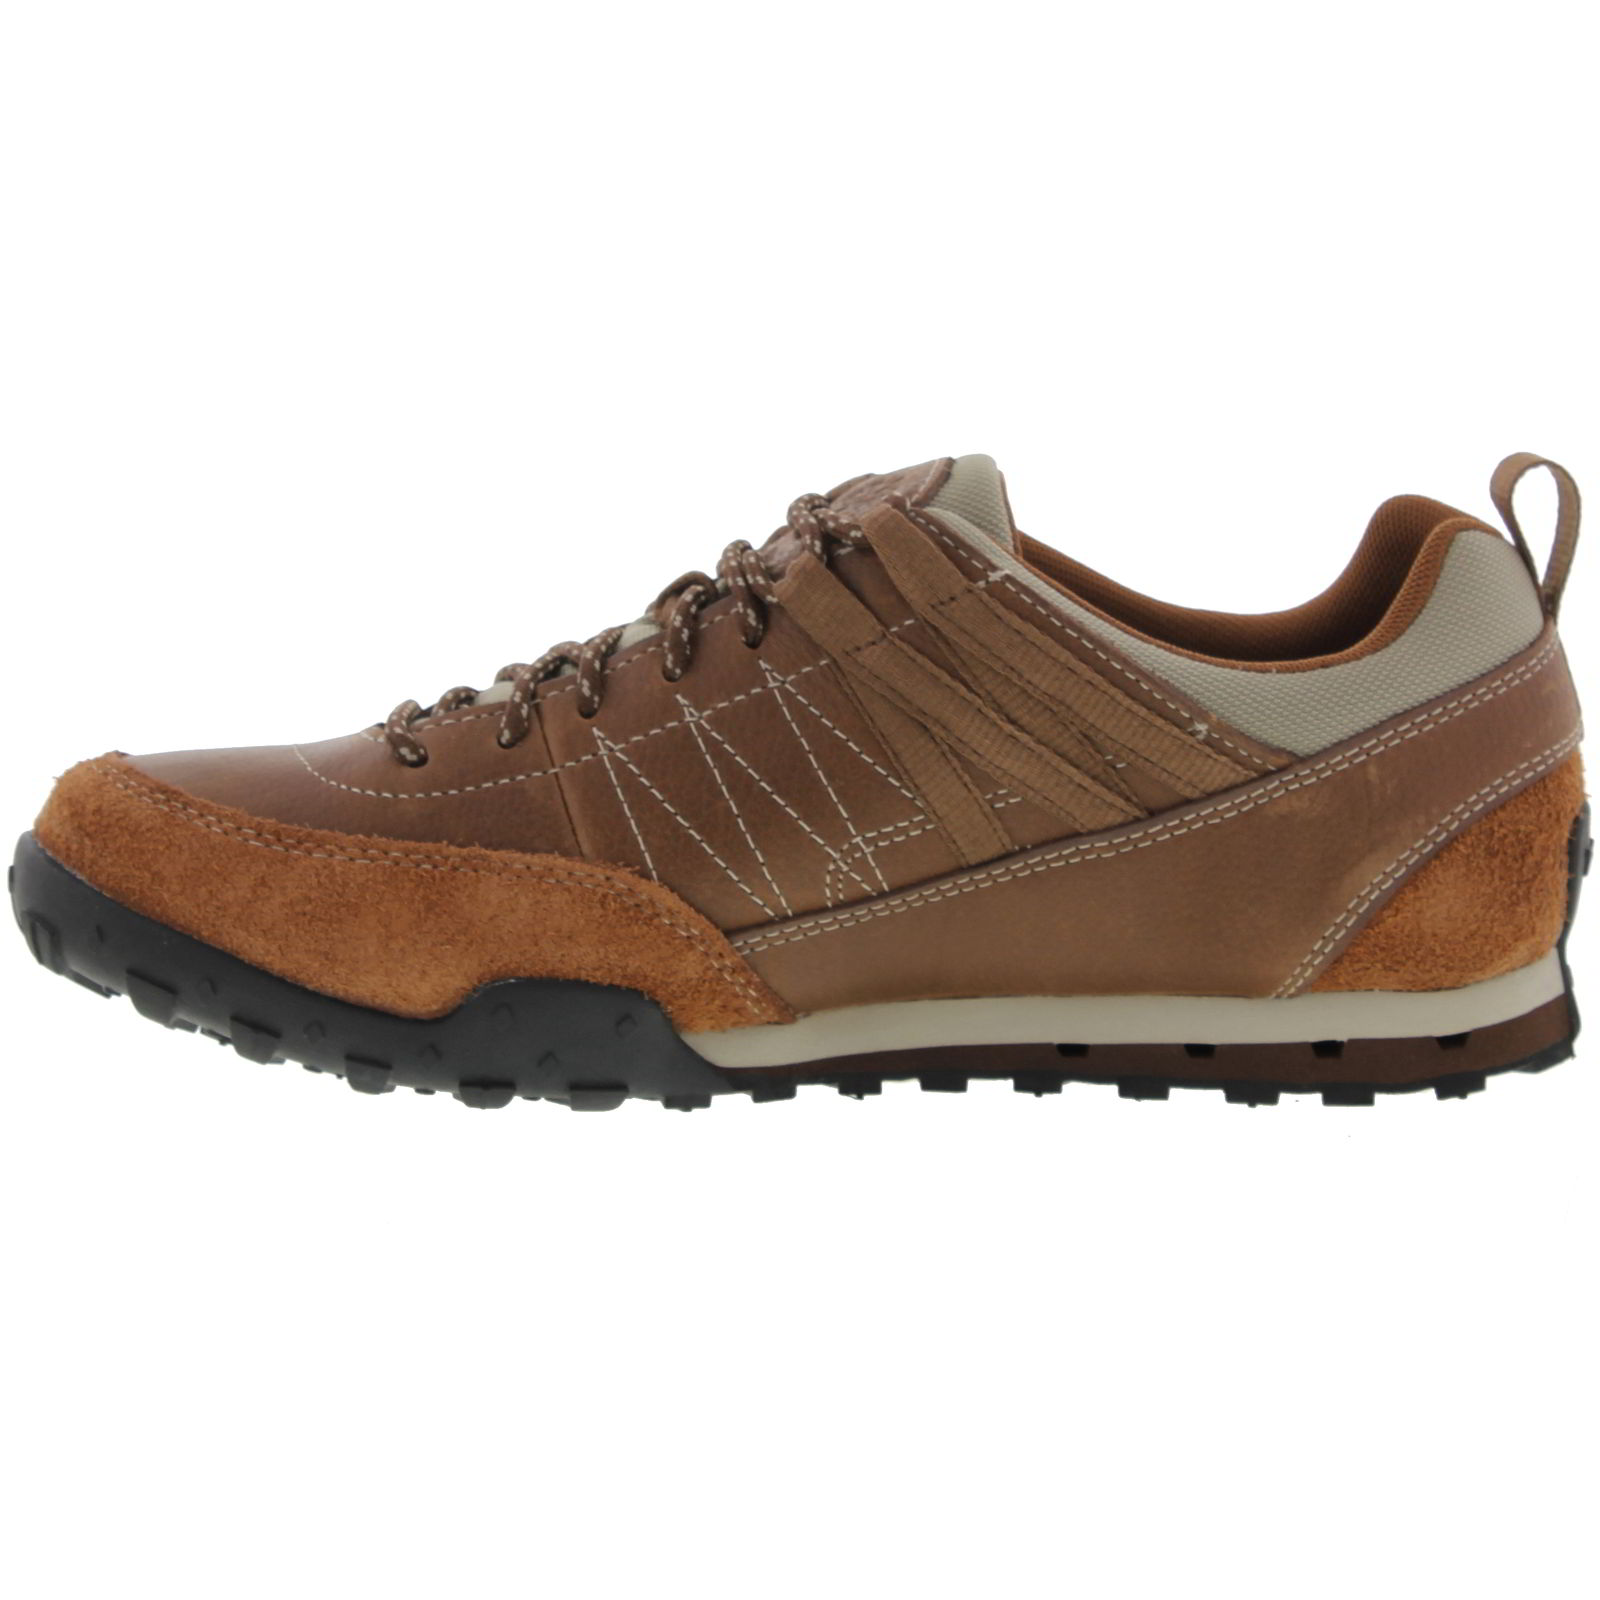 Timberland Mens Greeley Approach Gtx Low Shoes